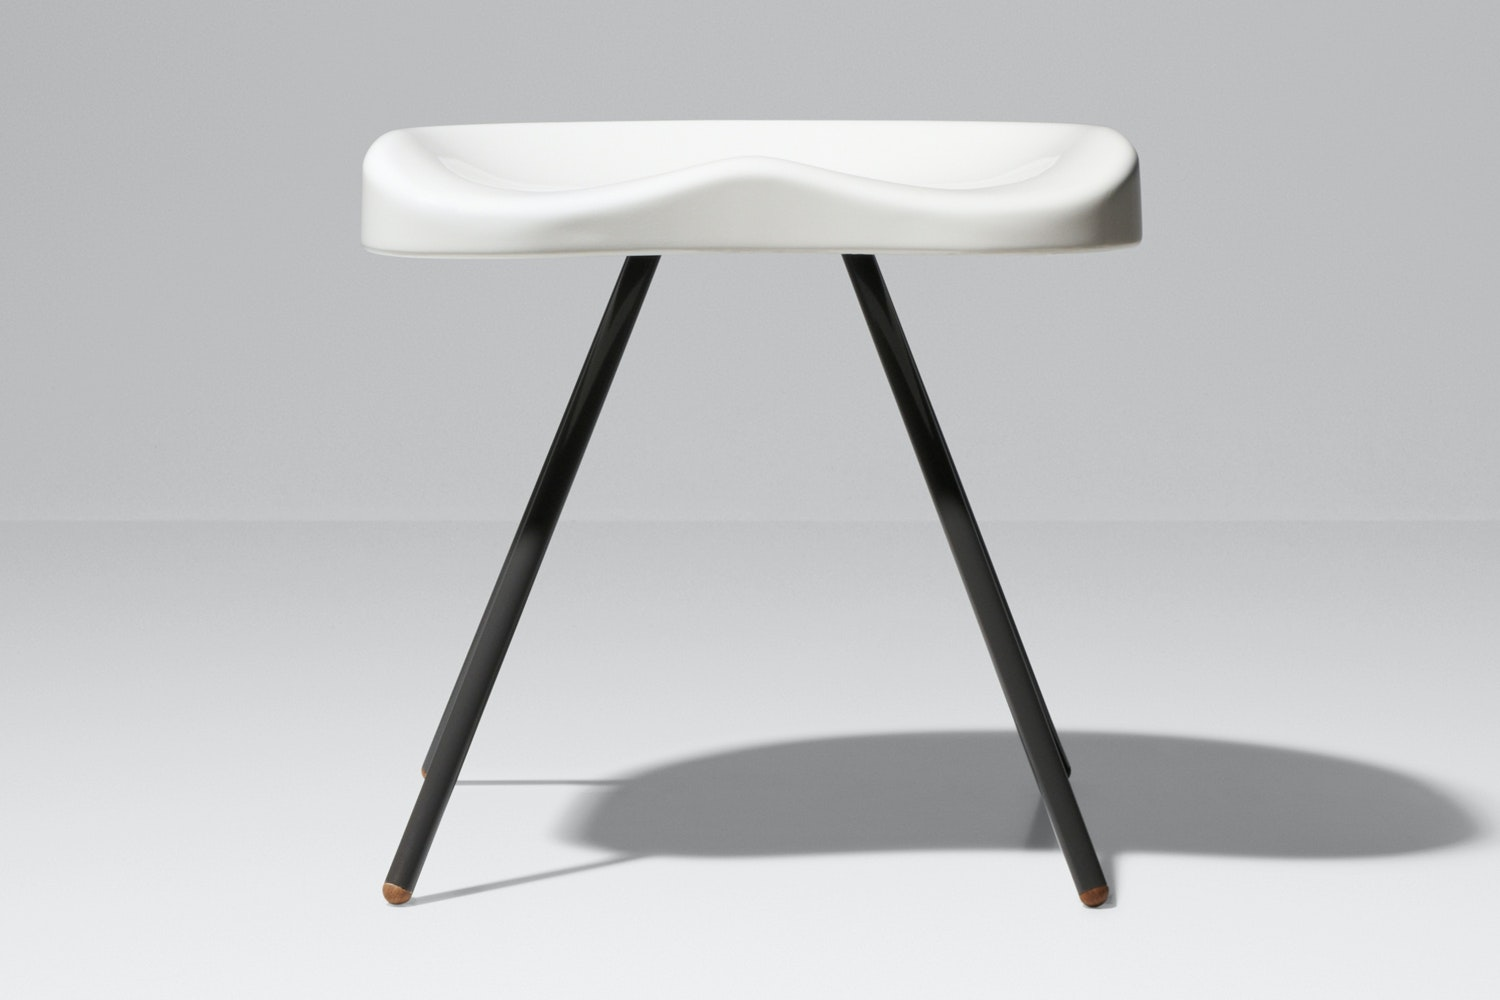 Tabouret No. 307 Stool by Jean Prouve for Vitra